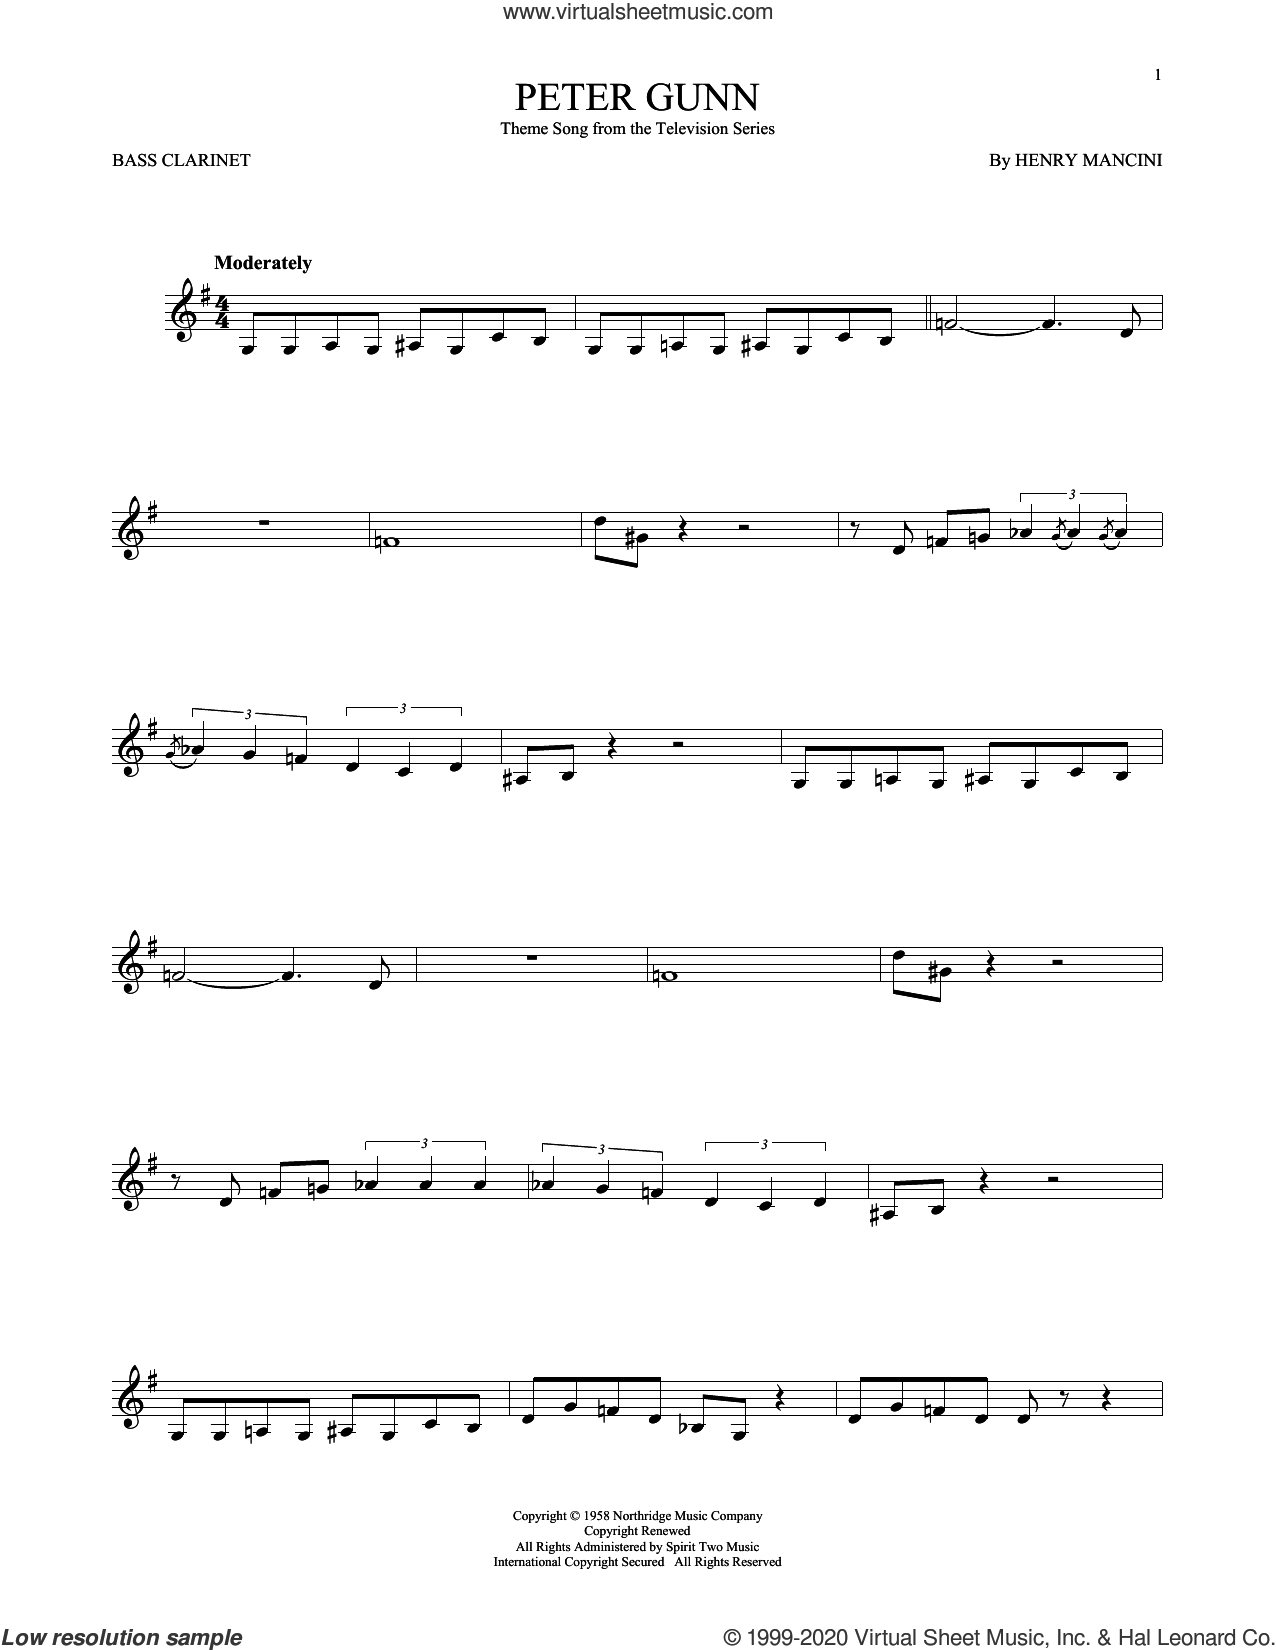 Peter Gunn sheet music for Bass Clarinet Solo (clarinetto basso) by Henry Mancini, intermediate skill level